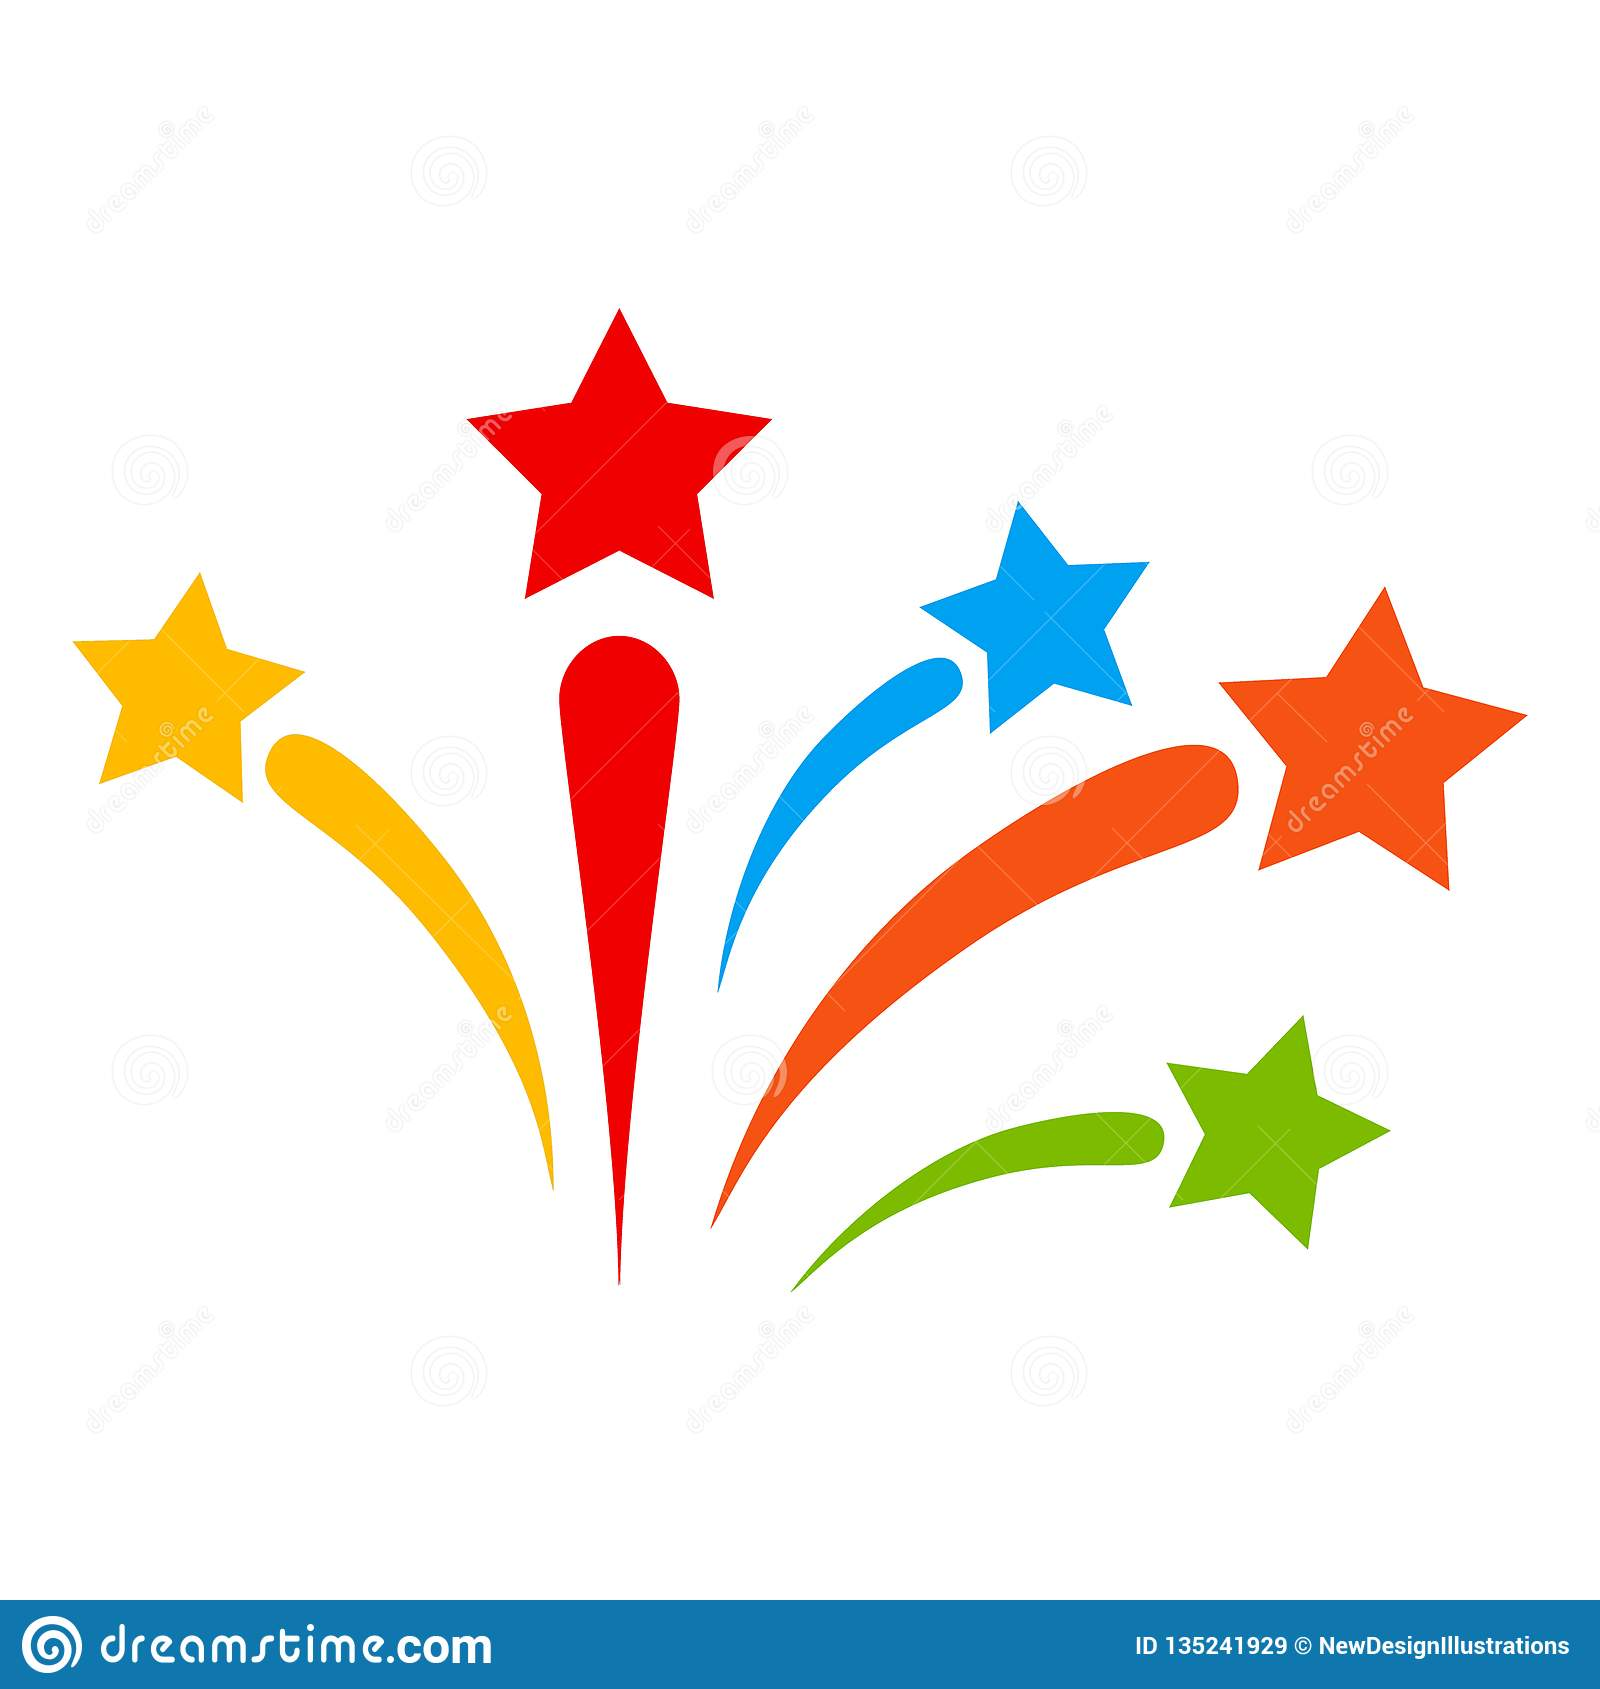 Vector Fireworks Icon Illustration Stock Vector ...Fireworks Icon